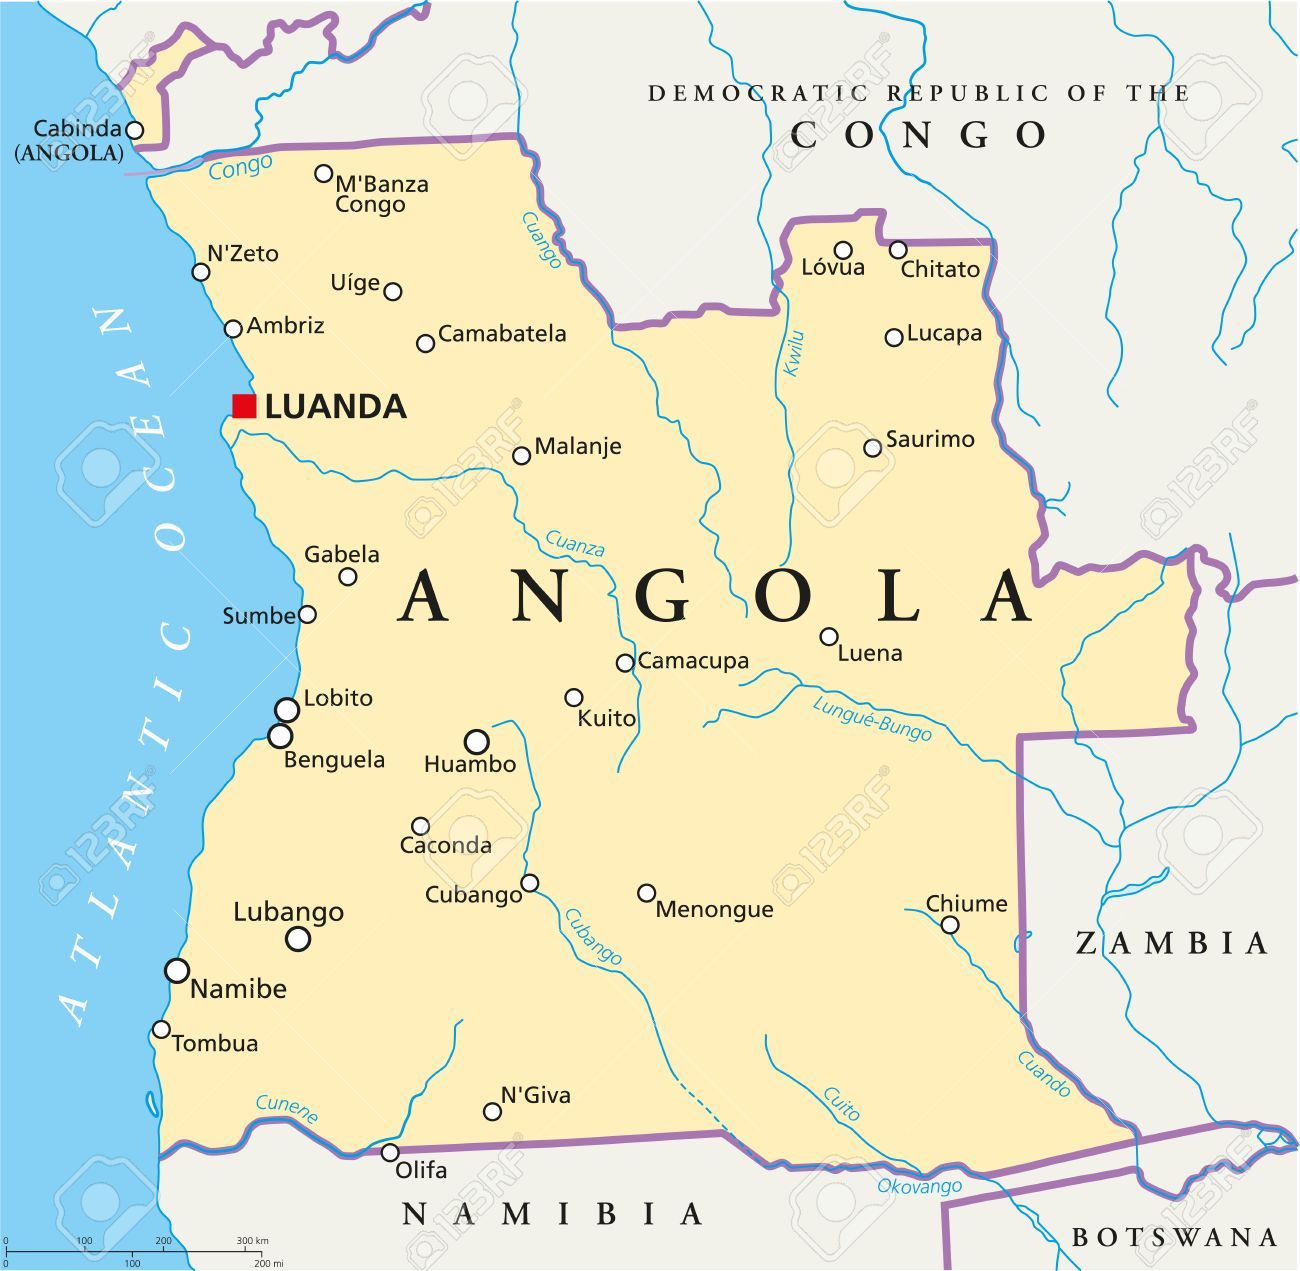 Angola Political Map With Capital Luanda With National Borders